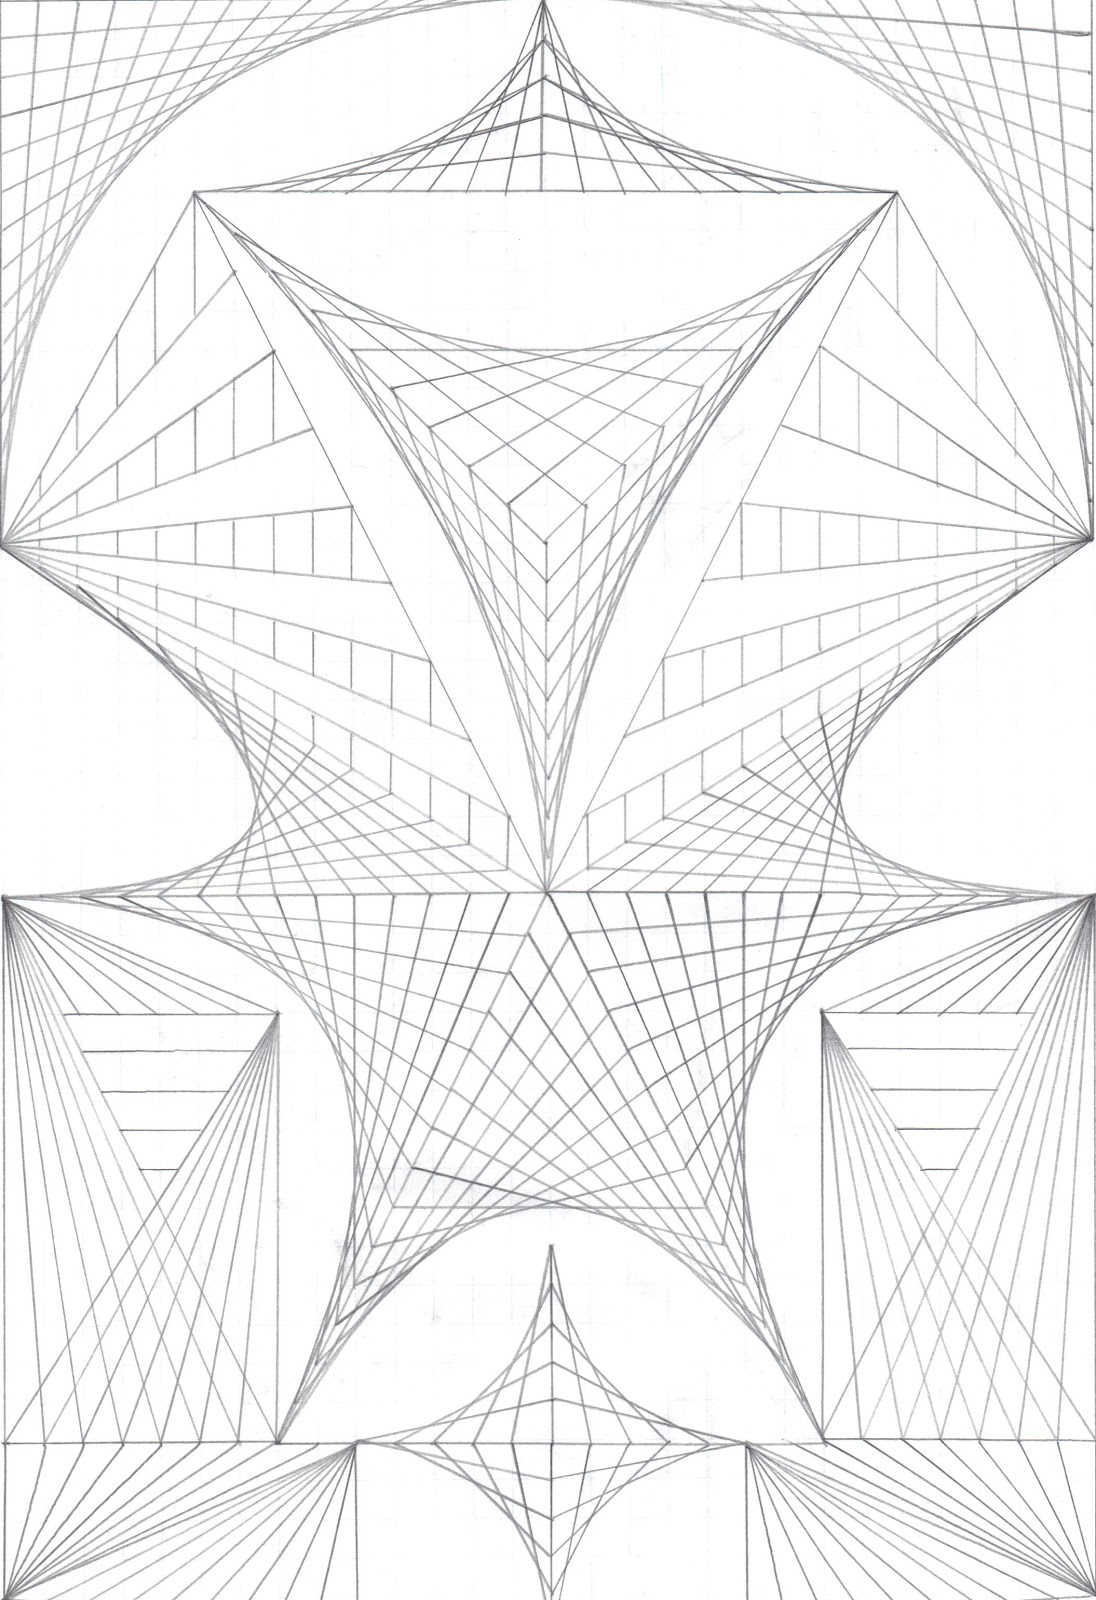 Easy Graph Paper Drawing | www.imgkid.com - The Image Kid ...